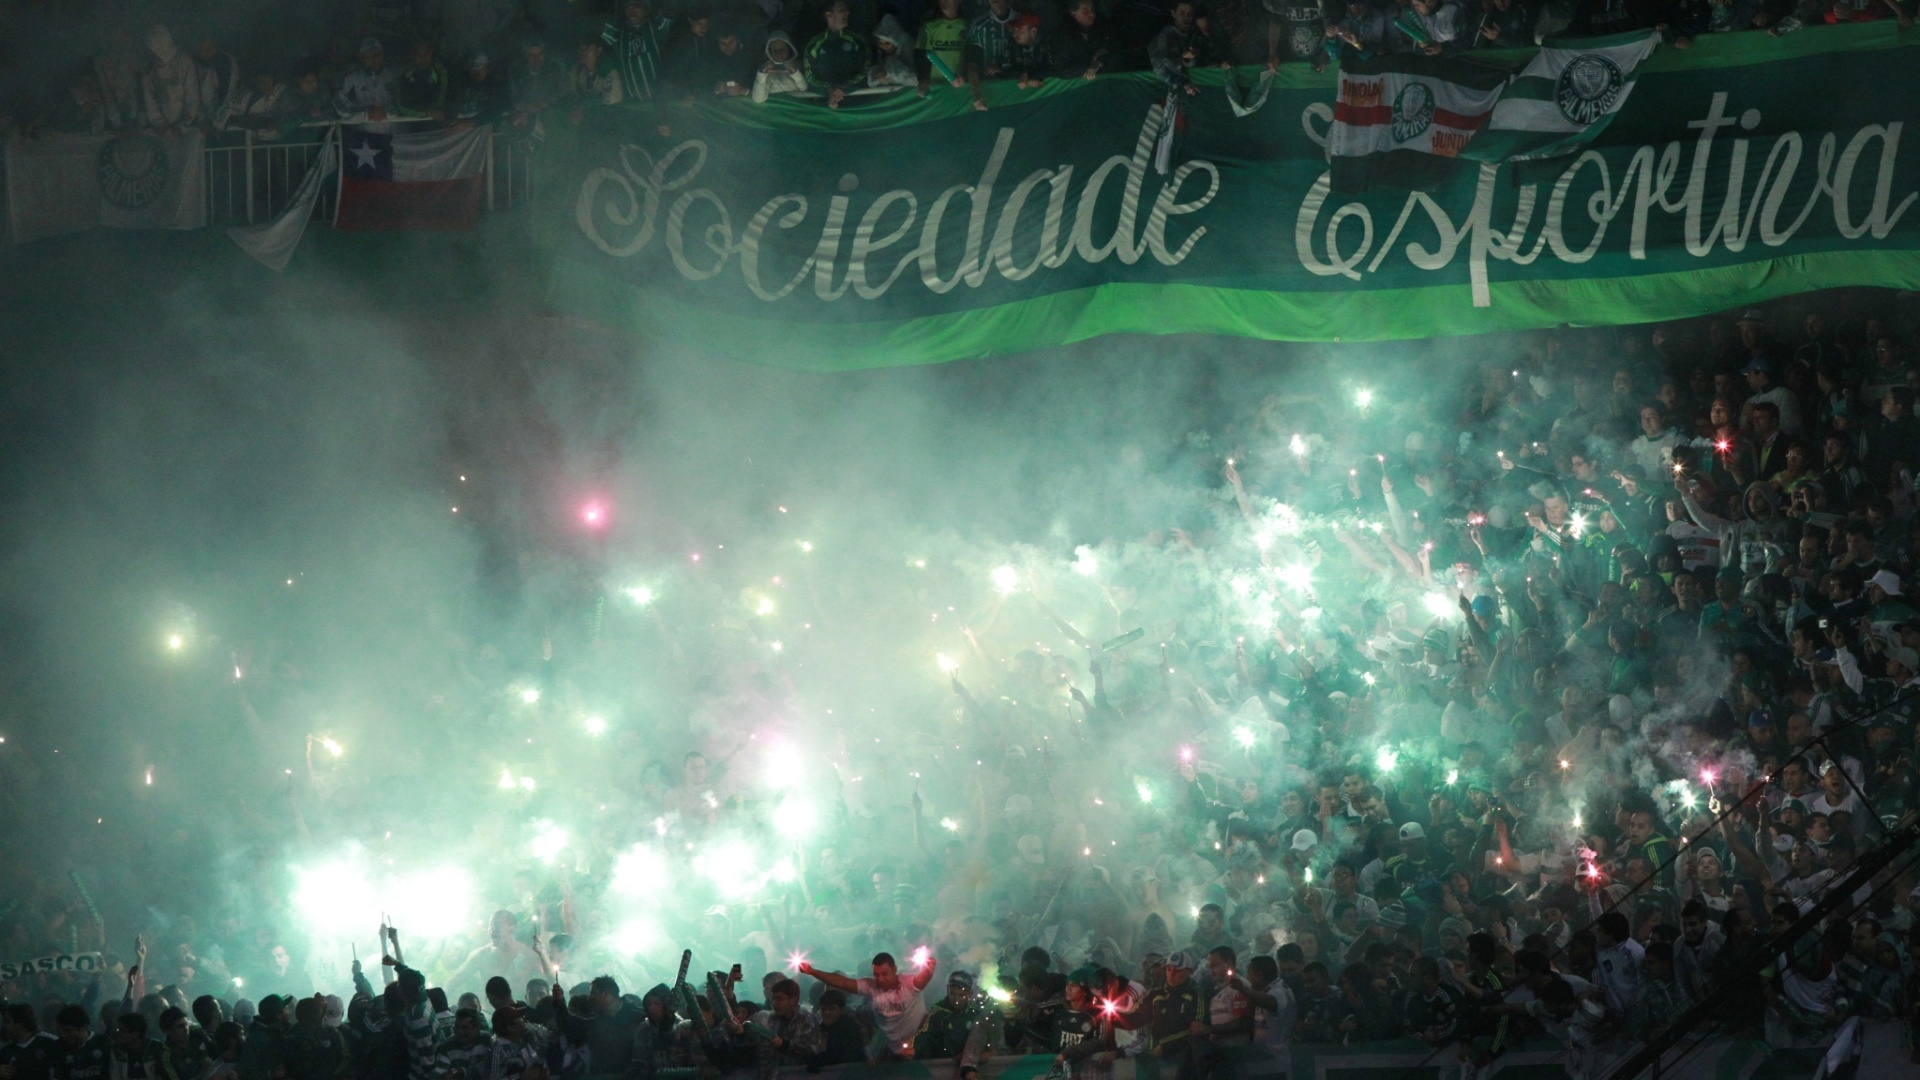 Torcida do Palmeiras faz festa nas arquibancadas do Couto Pereira